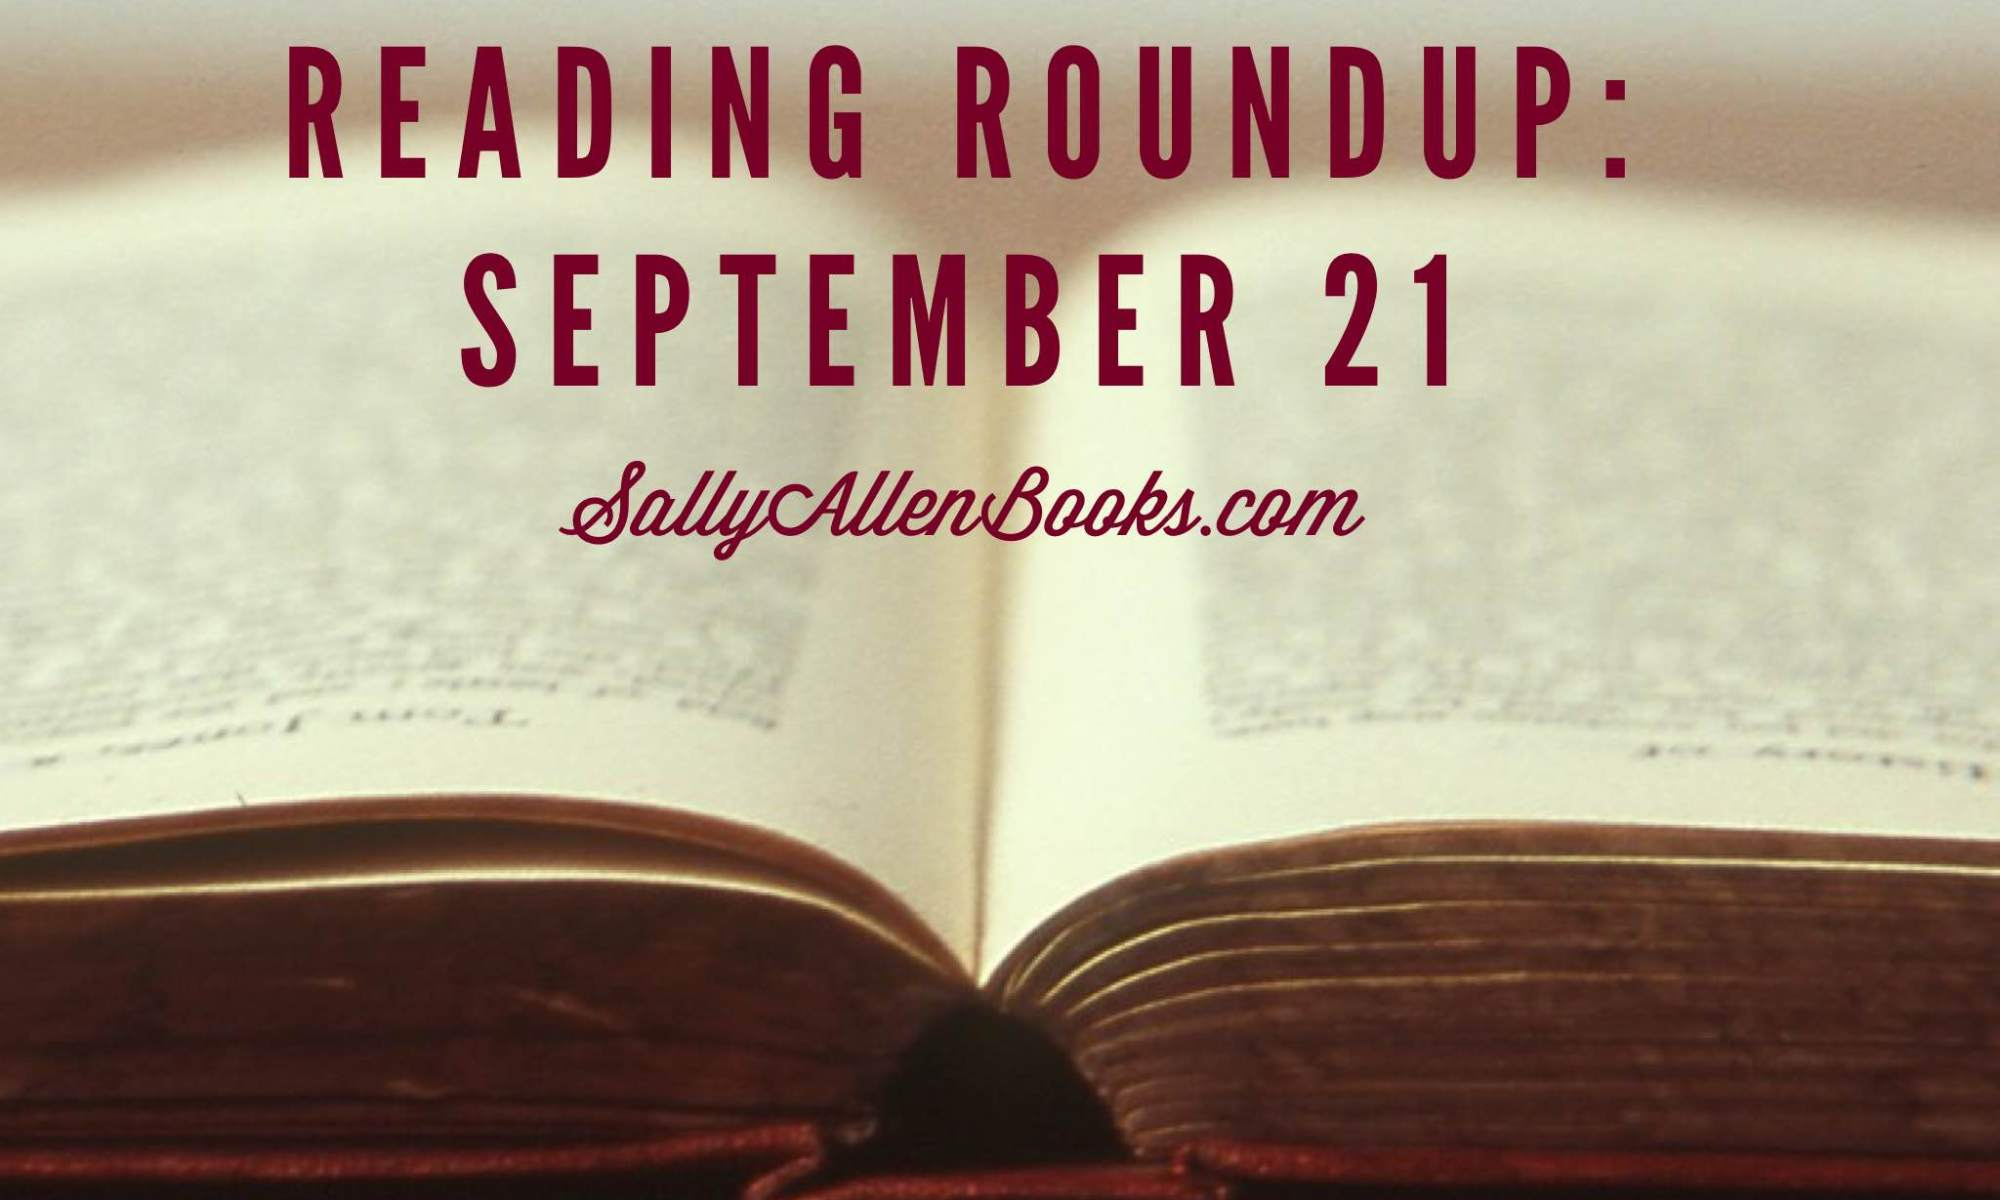 My Wednesday reading roundup: My odyssey with The Odyssey is almost over. I finished Shelf Discovery. And now I'm wondering what to read next, as usual.